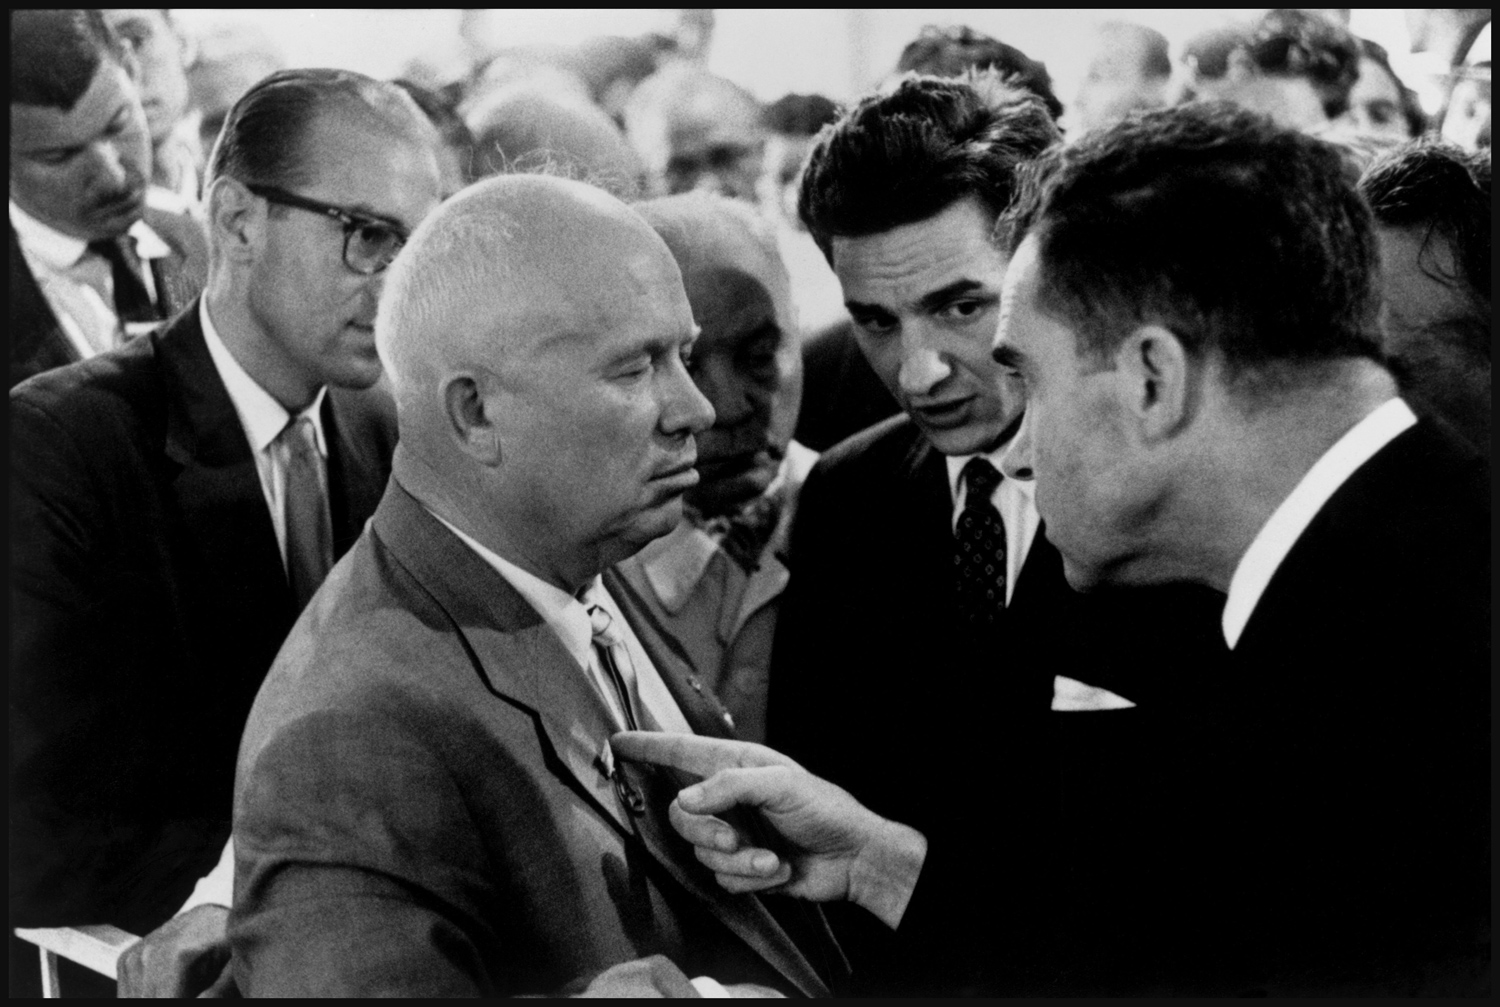 "Nixon and Khrushchev, Moscow, 1959. ""This is a picture that's quite well known. It's Nixon poking his finger into Khrushchev's vest. What can I say about it?  I was lucky to be there. Photography is essentially being in the right place at the right time and then crafting a good composition, then crafting everything that's around you so that it's easily readable. I was 31 and on assignment to take pictures of Westinghouse refrigerators, nothing to do with this photograph. But as it turned out, Nixon was in the Soviet Union on a state visit, so I simply attached myself to the press corps and got lucky."""